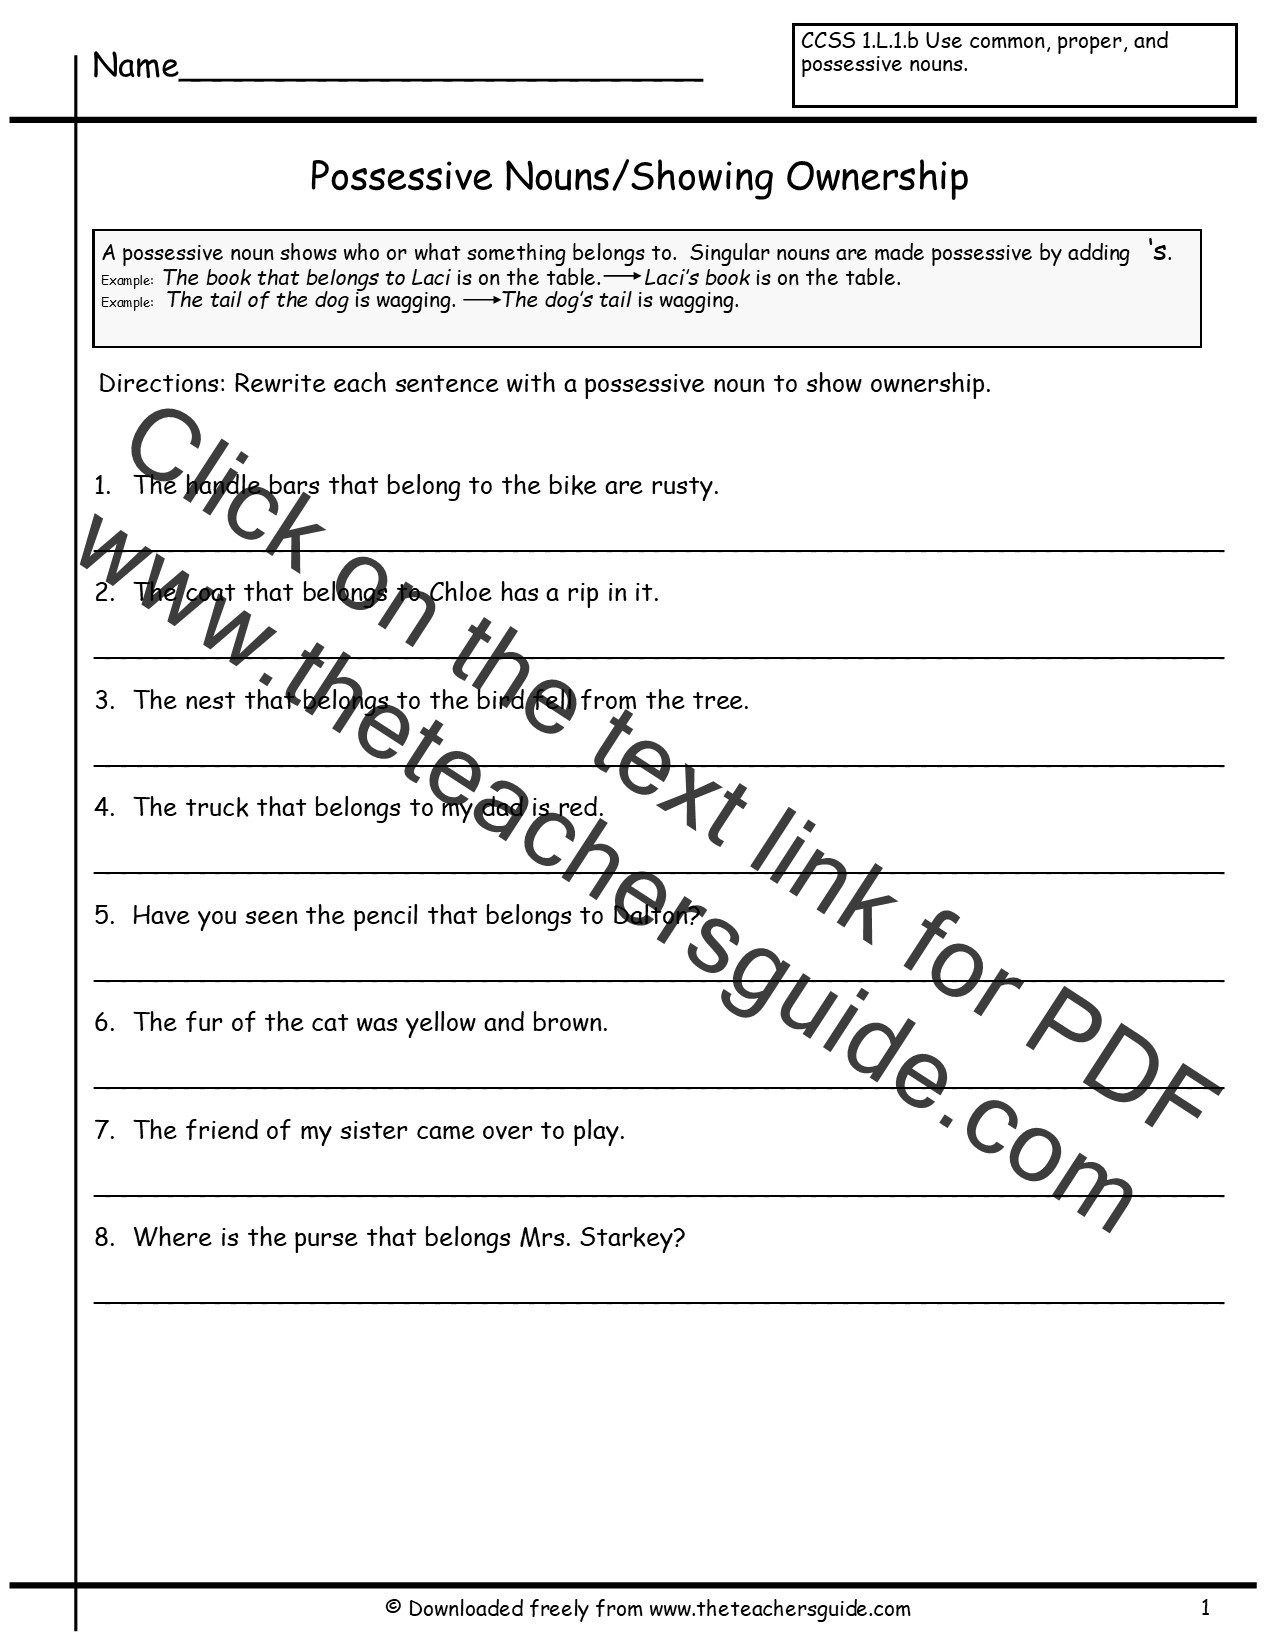 Possessive Pronouns Worksheet 3rd Grade Copy Grammar Possessive Irregular Nouns Lessons Tes